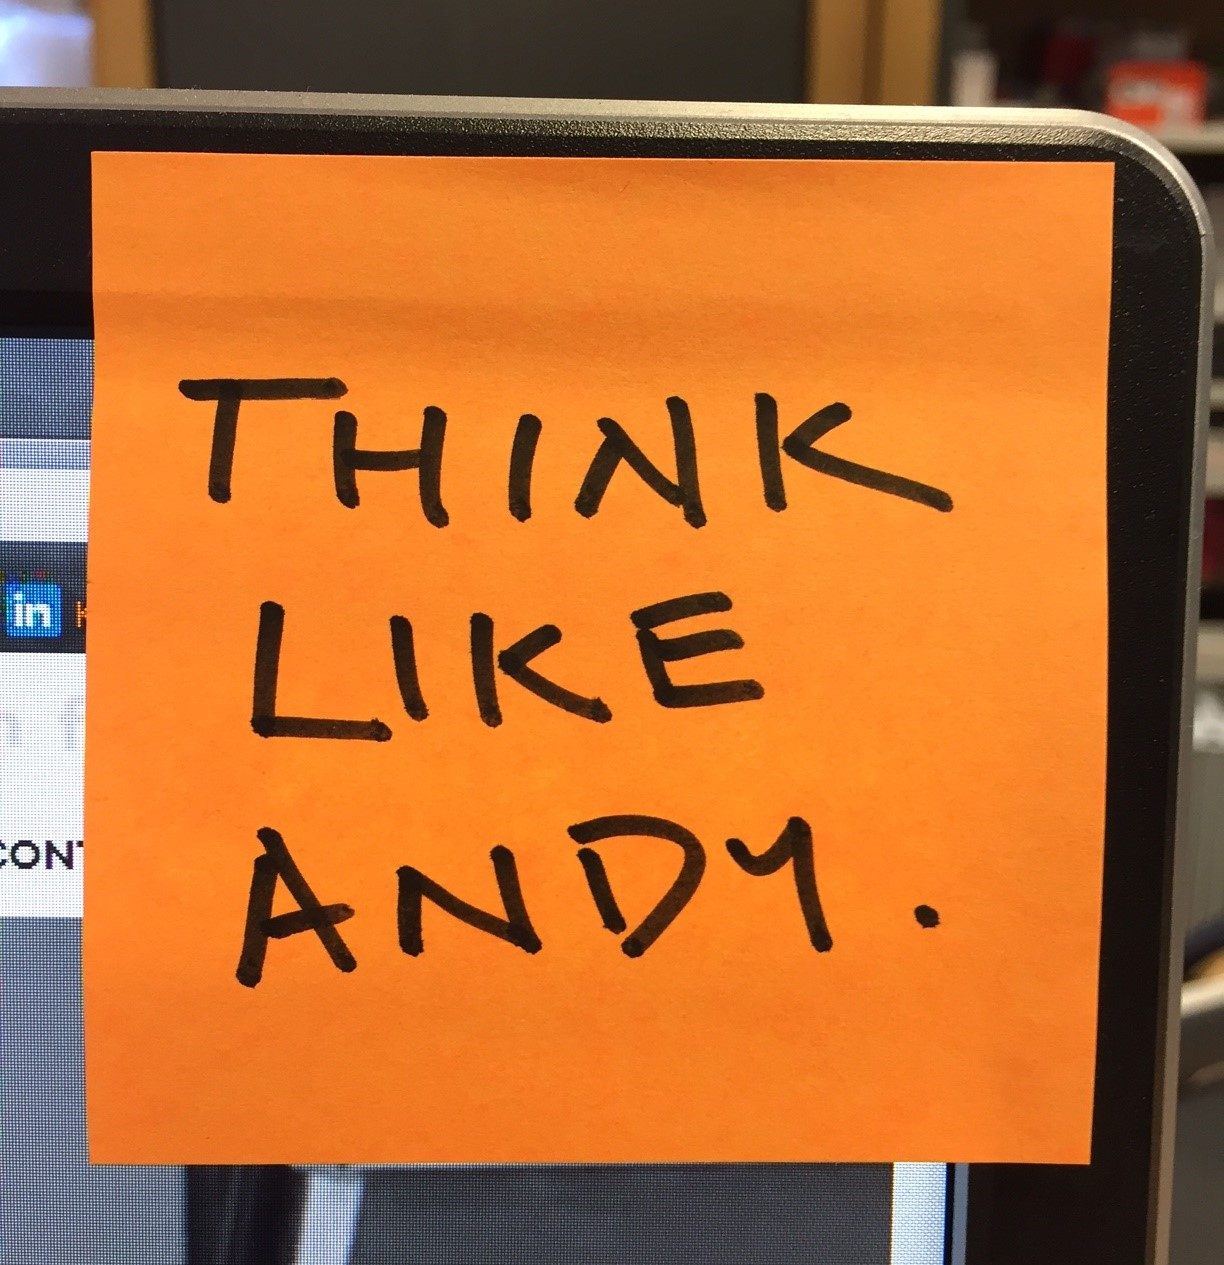 think-like-andy